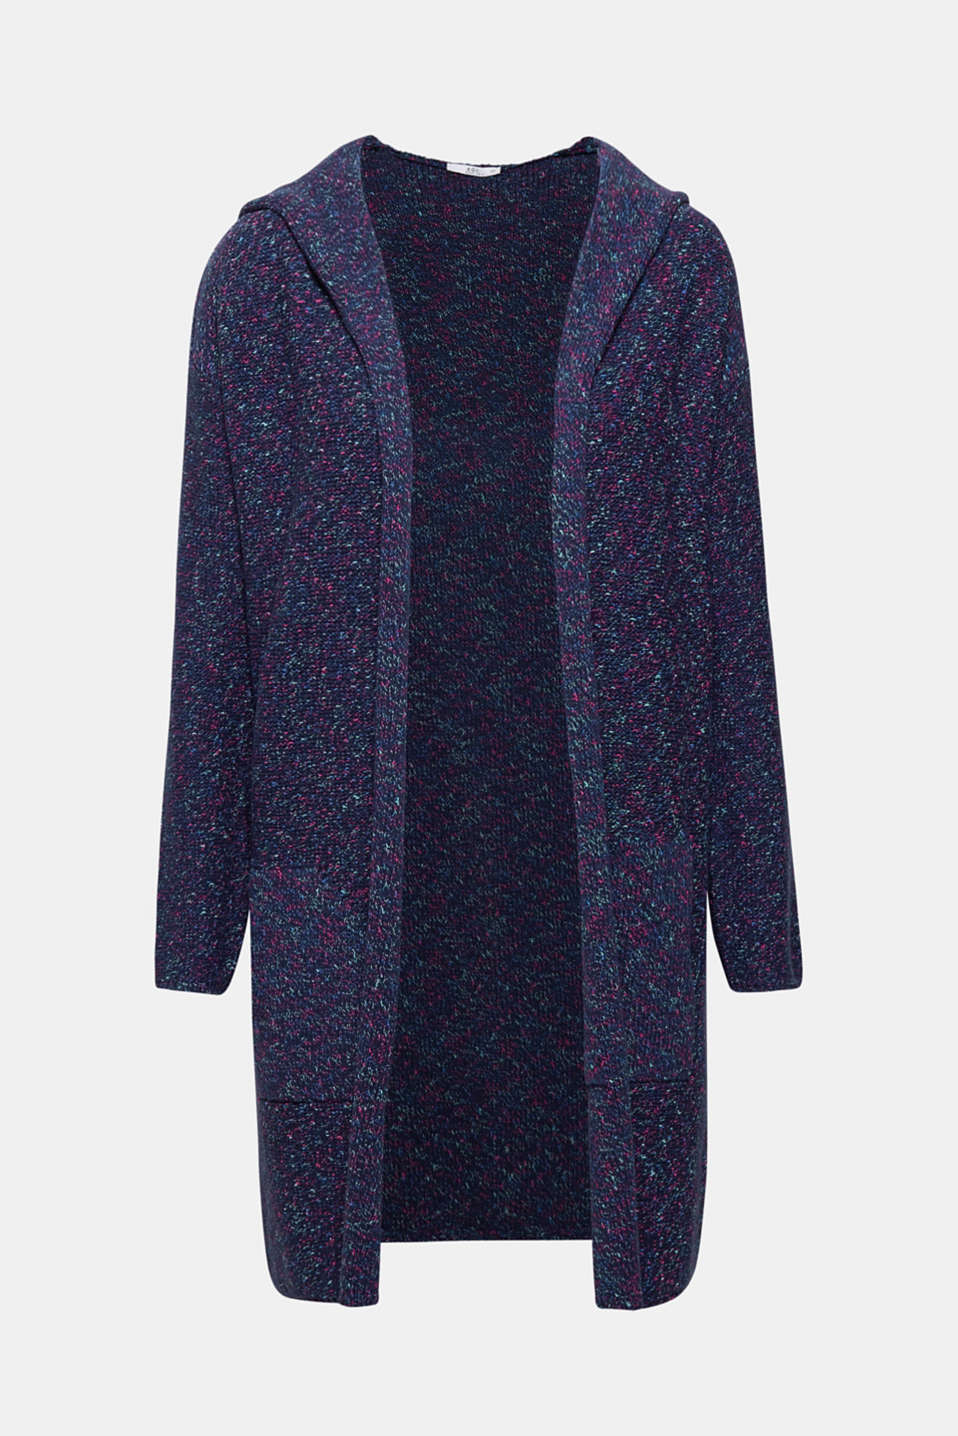 A comfortable, favourite piece with an especially attractive look, this hooded cardigan is made from knitted mouliné yarn, composed of differently coloured, thick fibres twisted together.